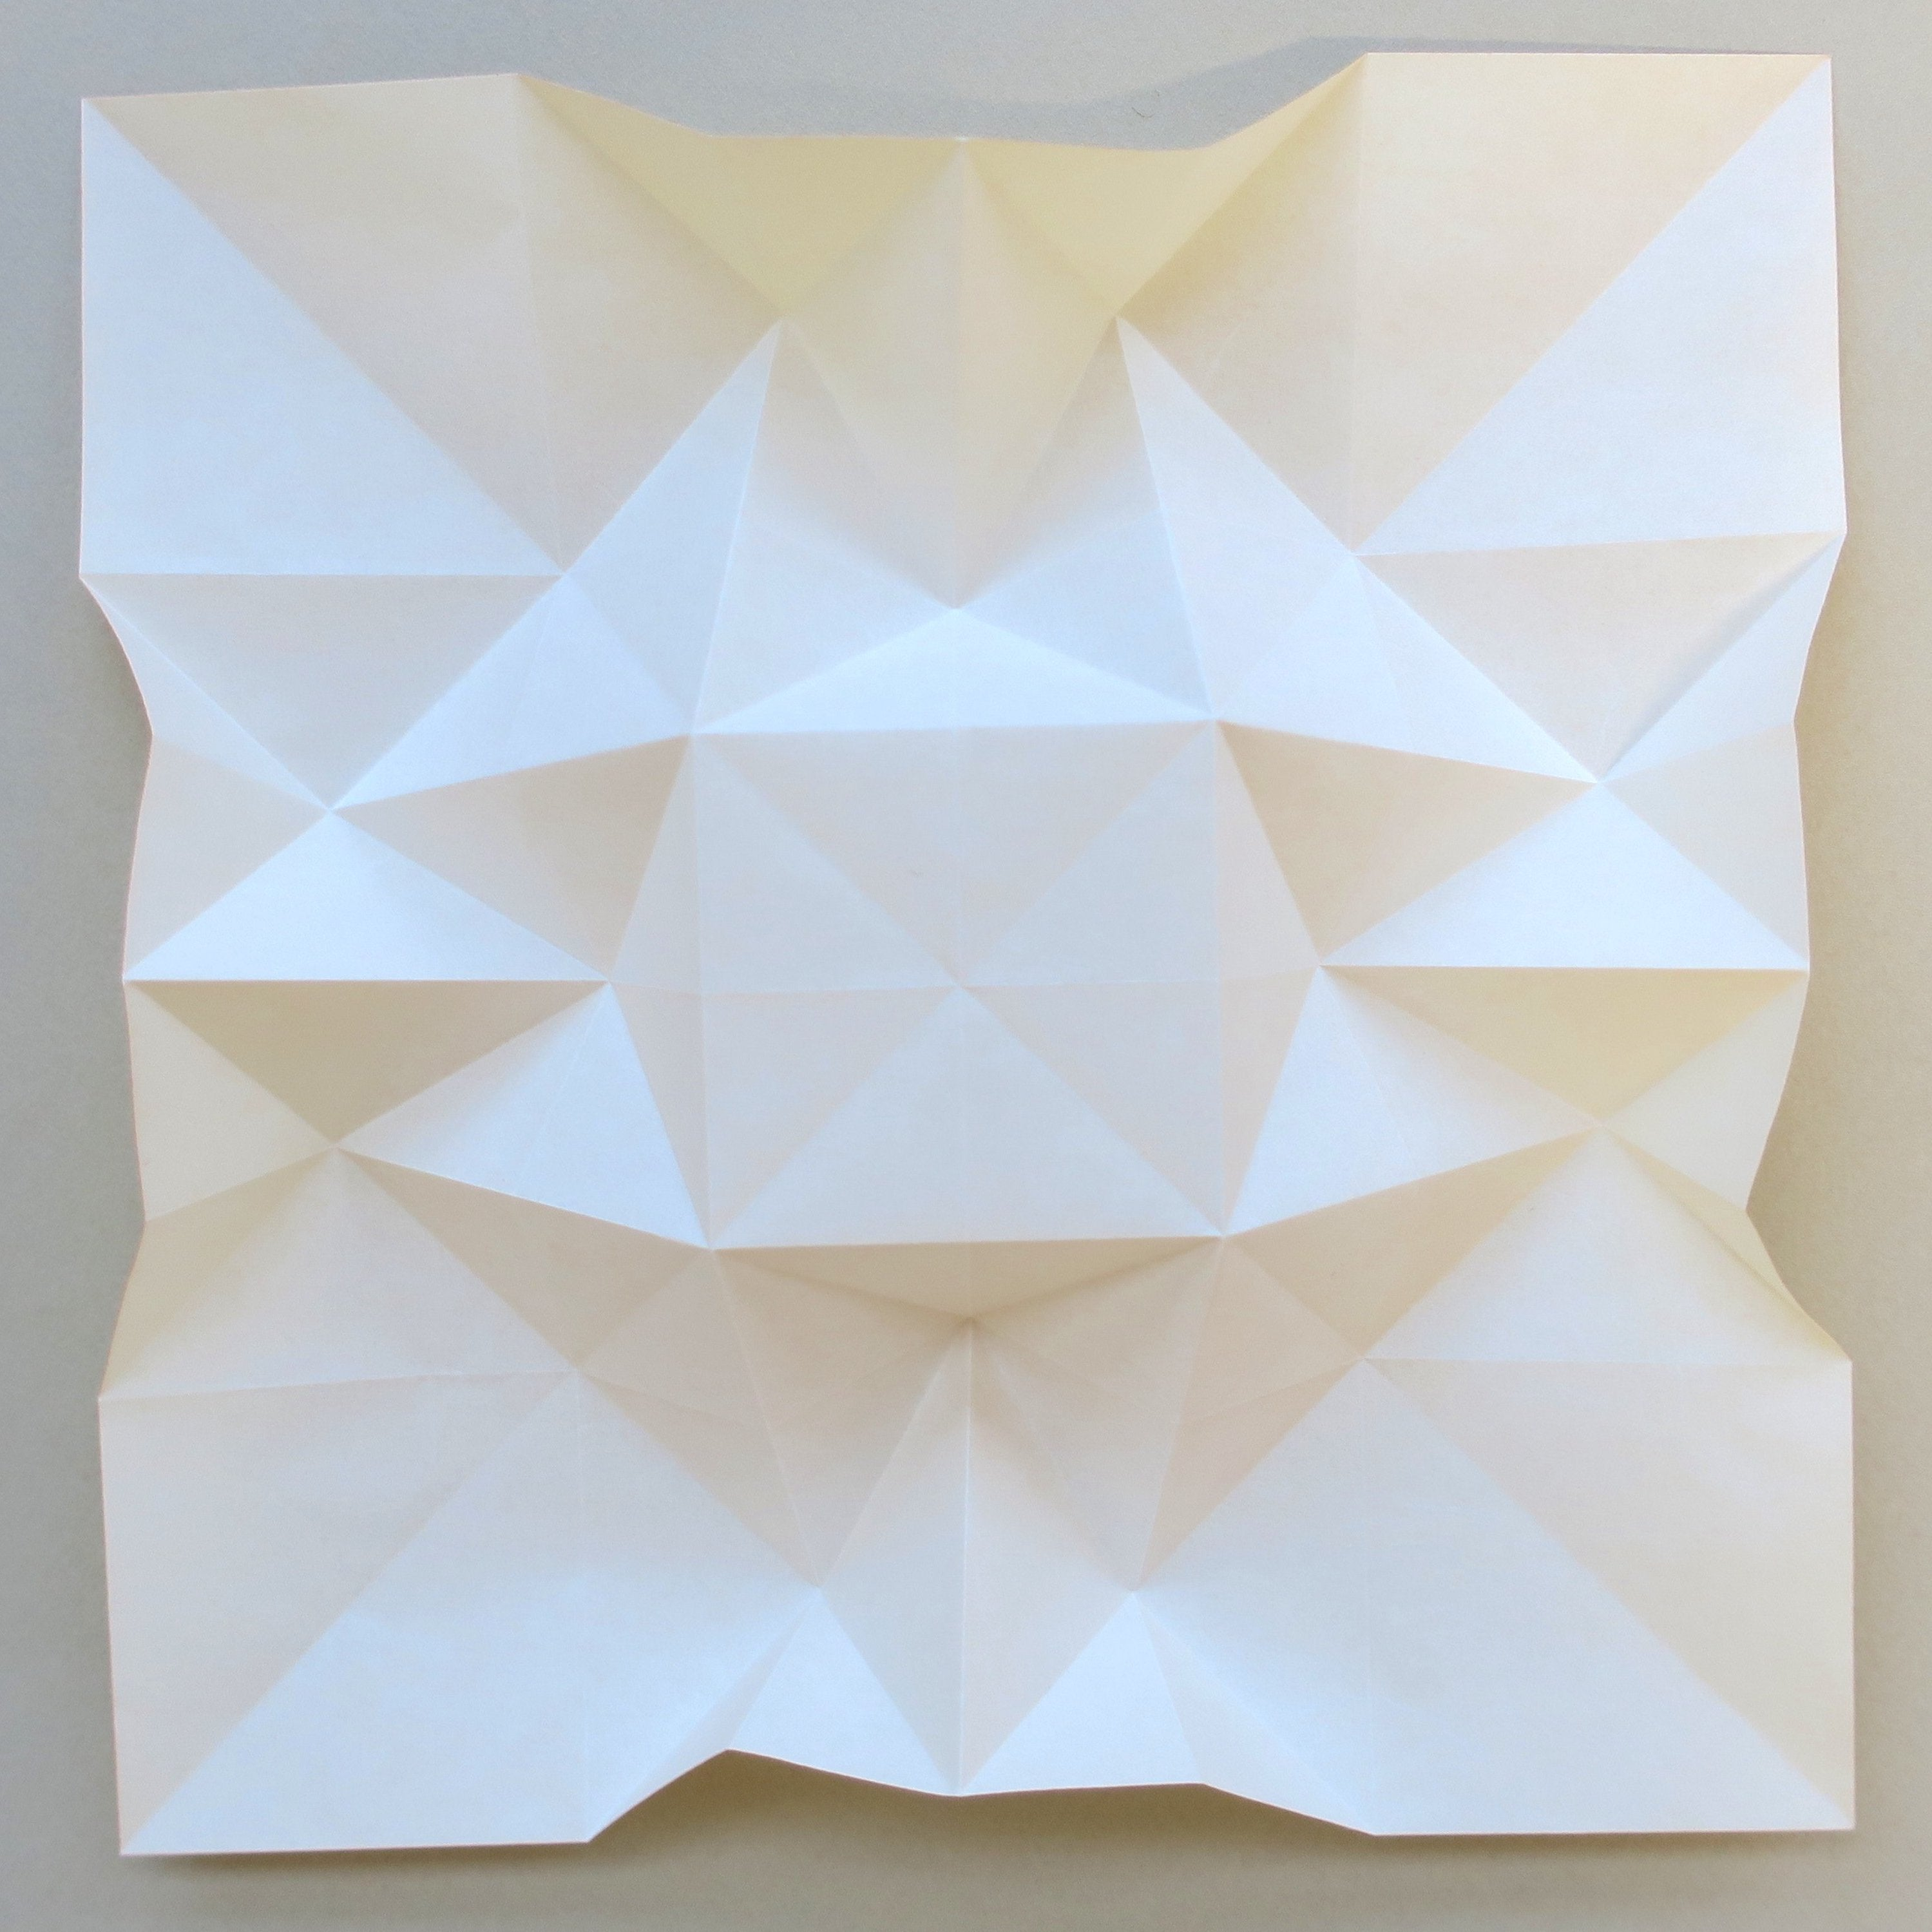 Wall Sculpture-3D Wall Art-Origami-White Paper Relief | Etsy | 2999x2999